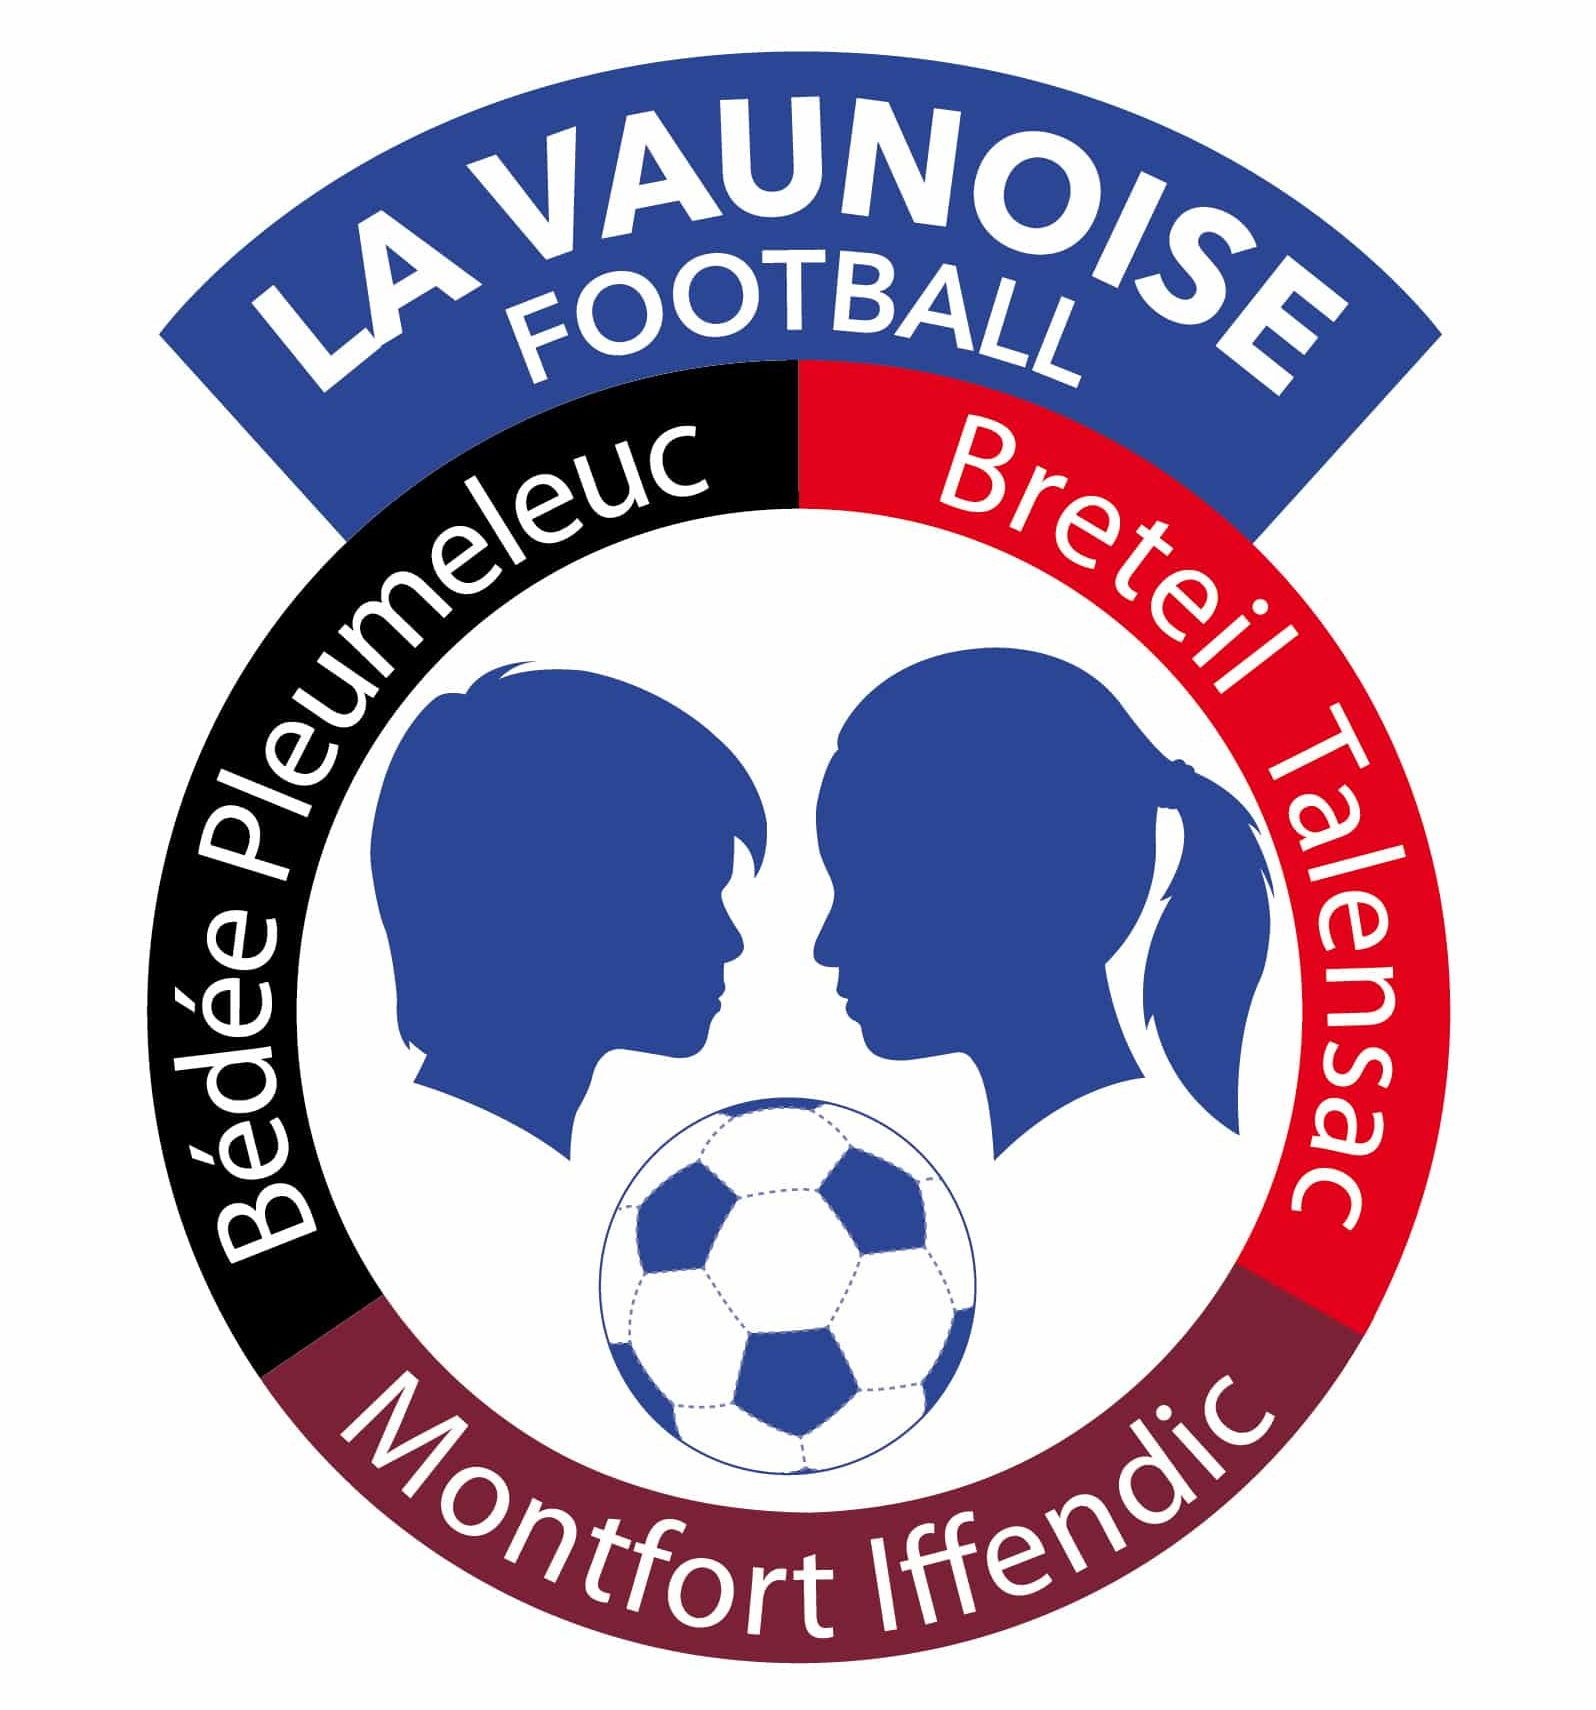 GJ La Vaunoise Football